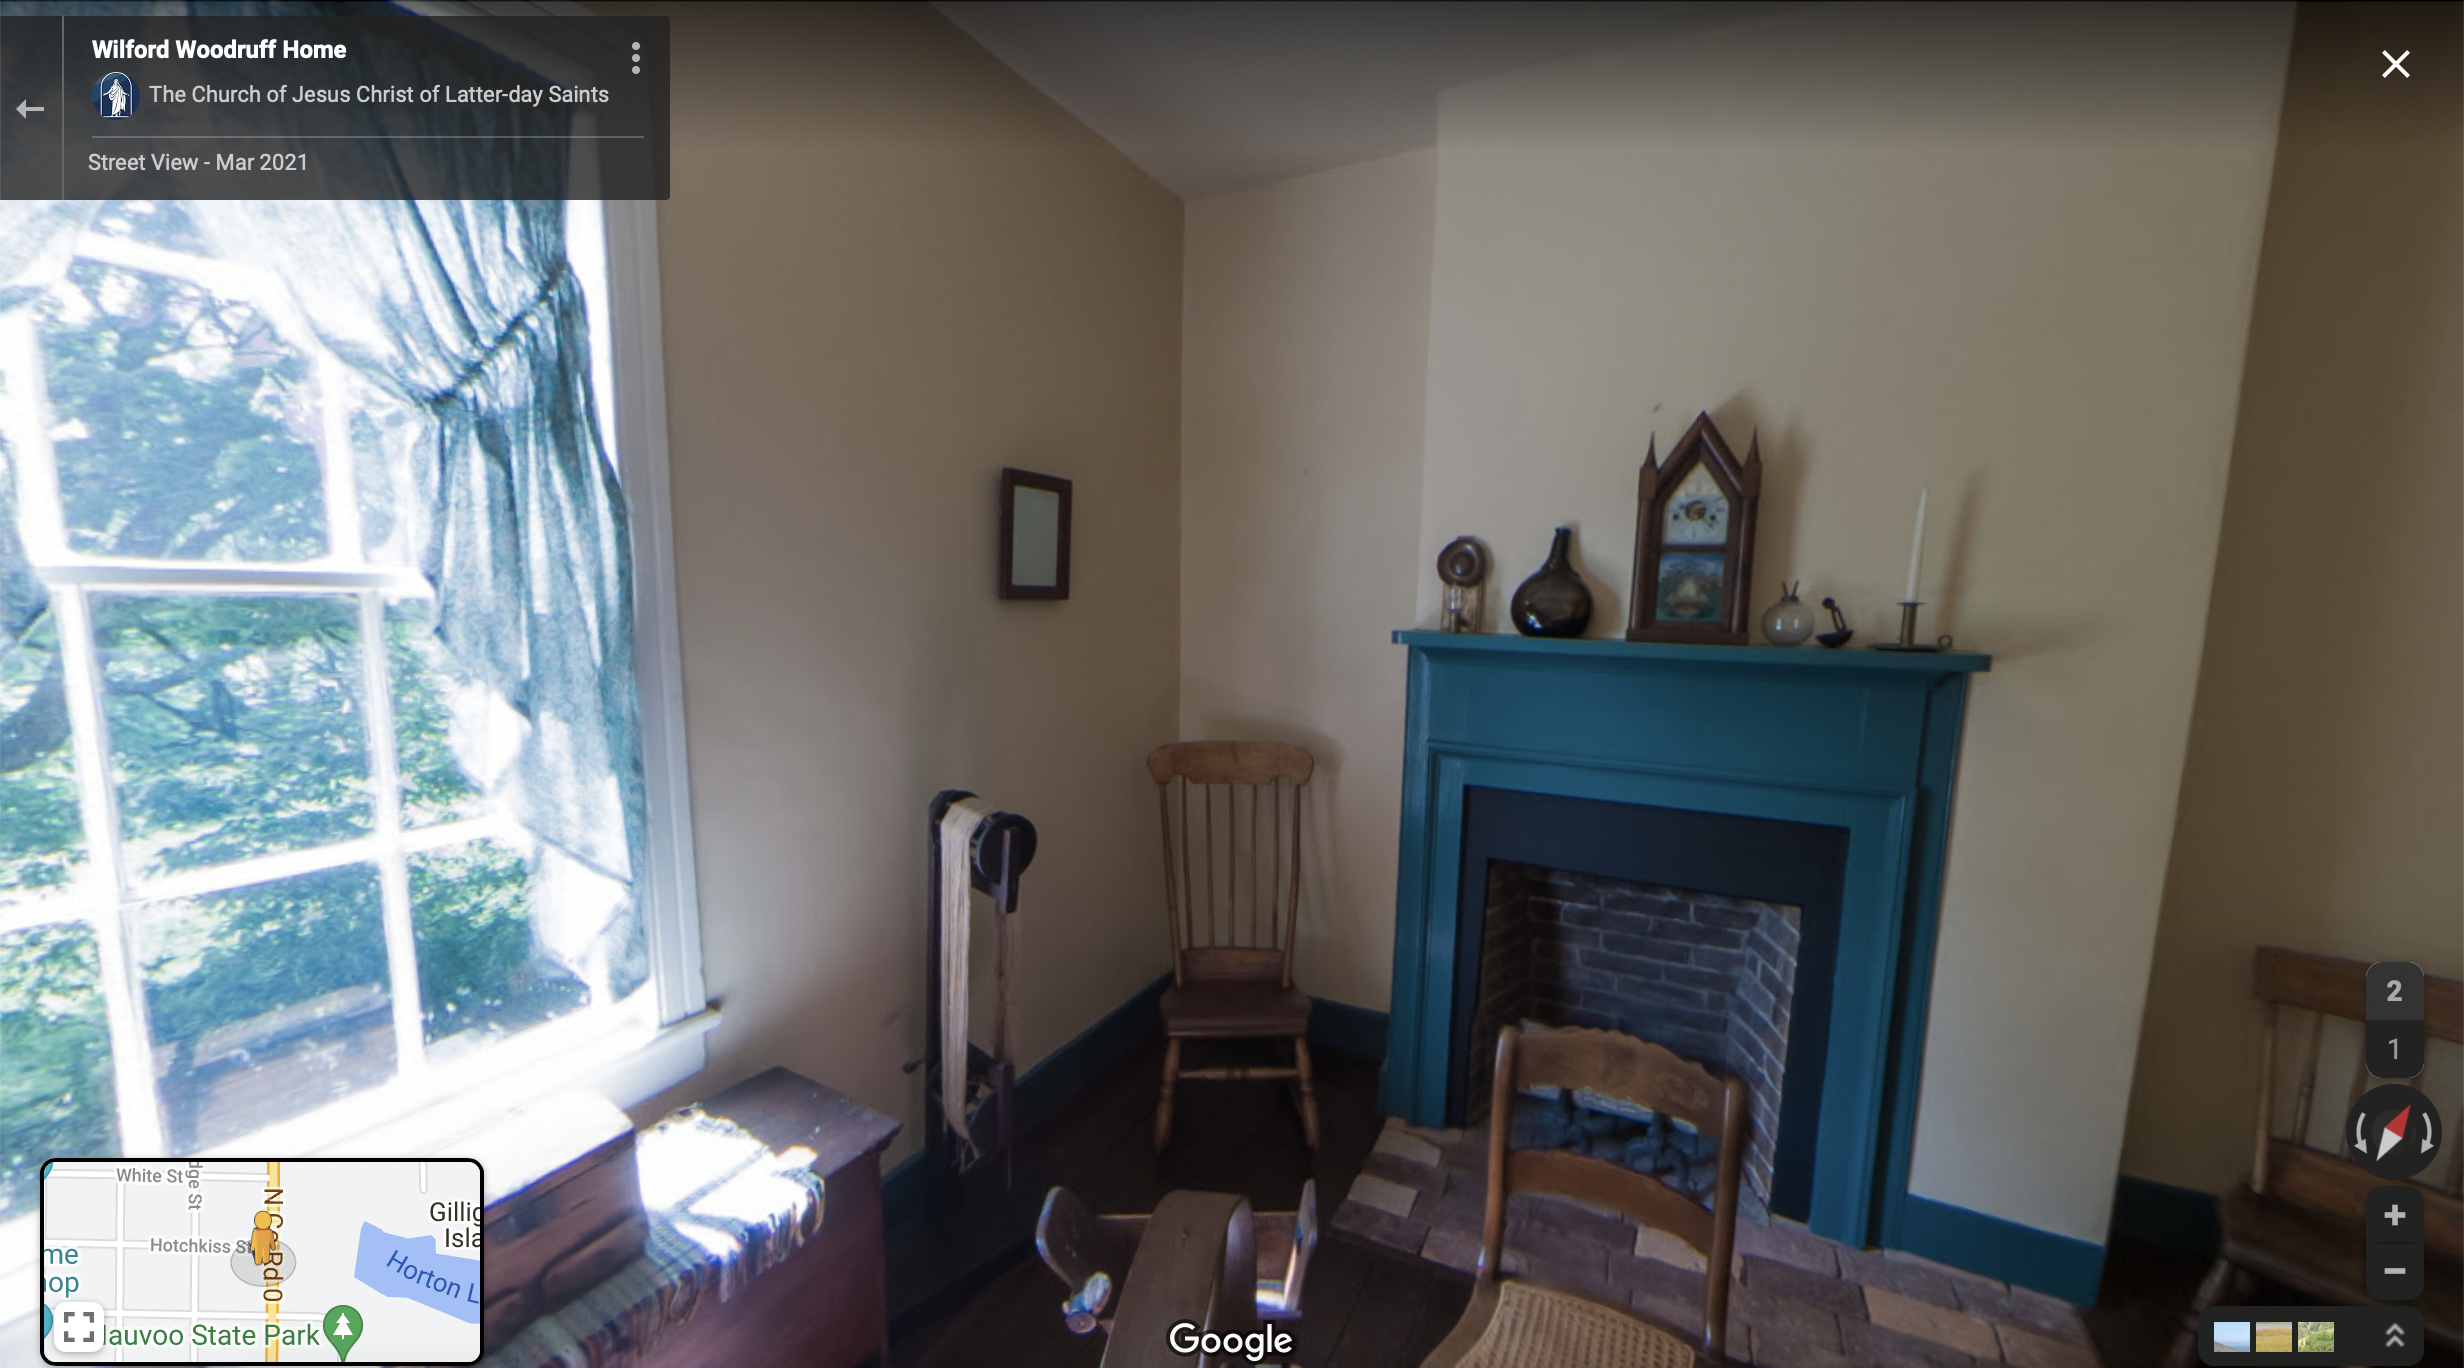 Screenshot of the Google Maps 360 view of the Wilford Woodruff Home